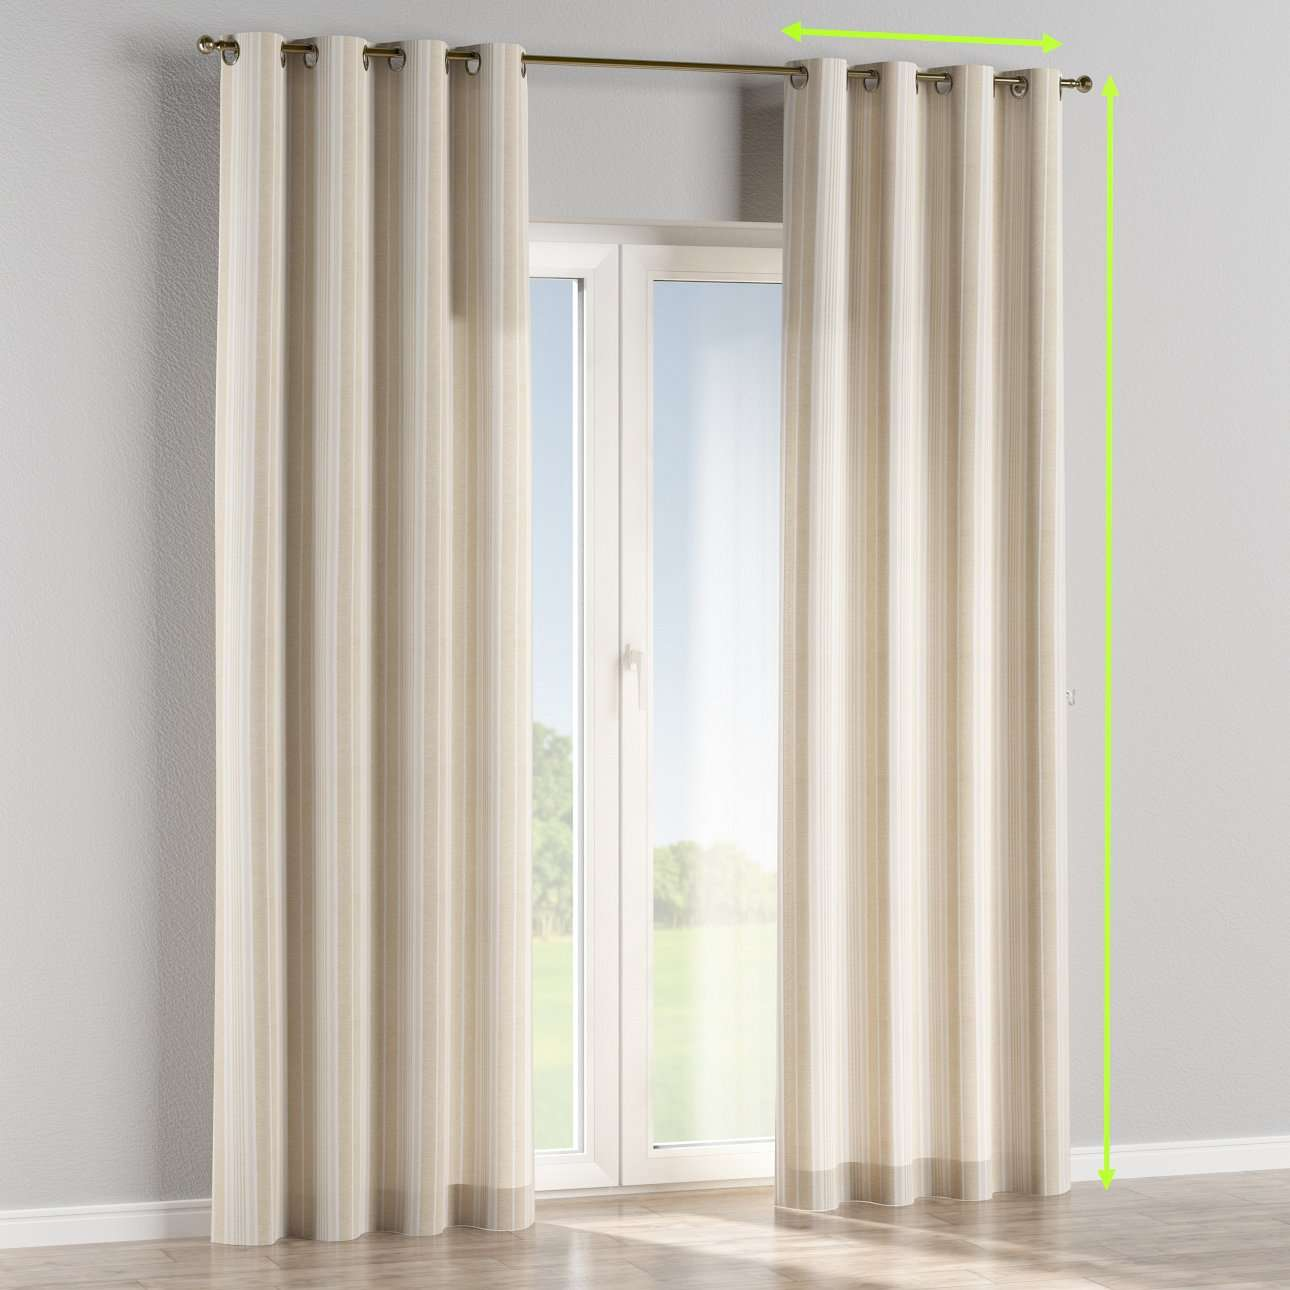 Eyelet curtains in collection Rustica, fabric: 138-24